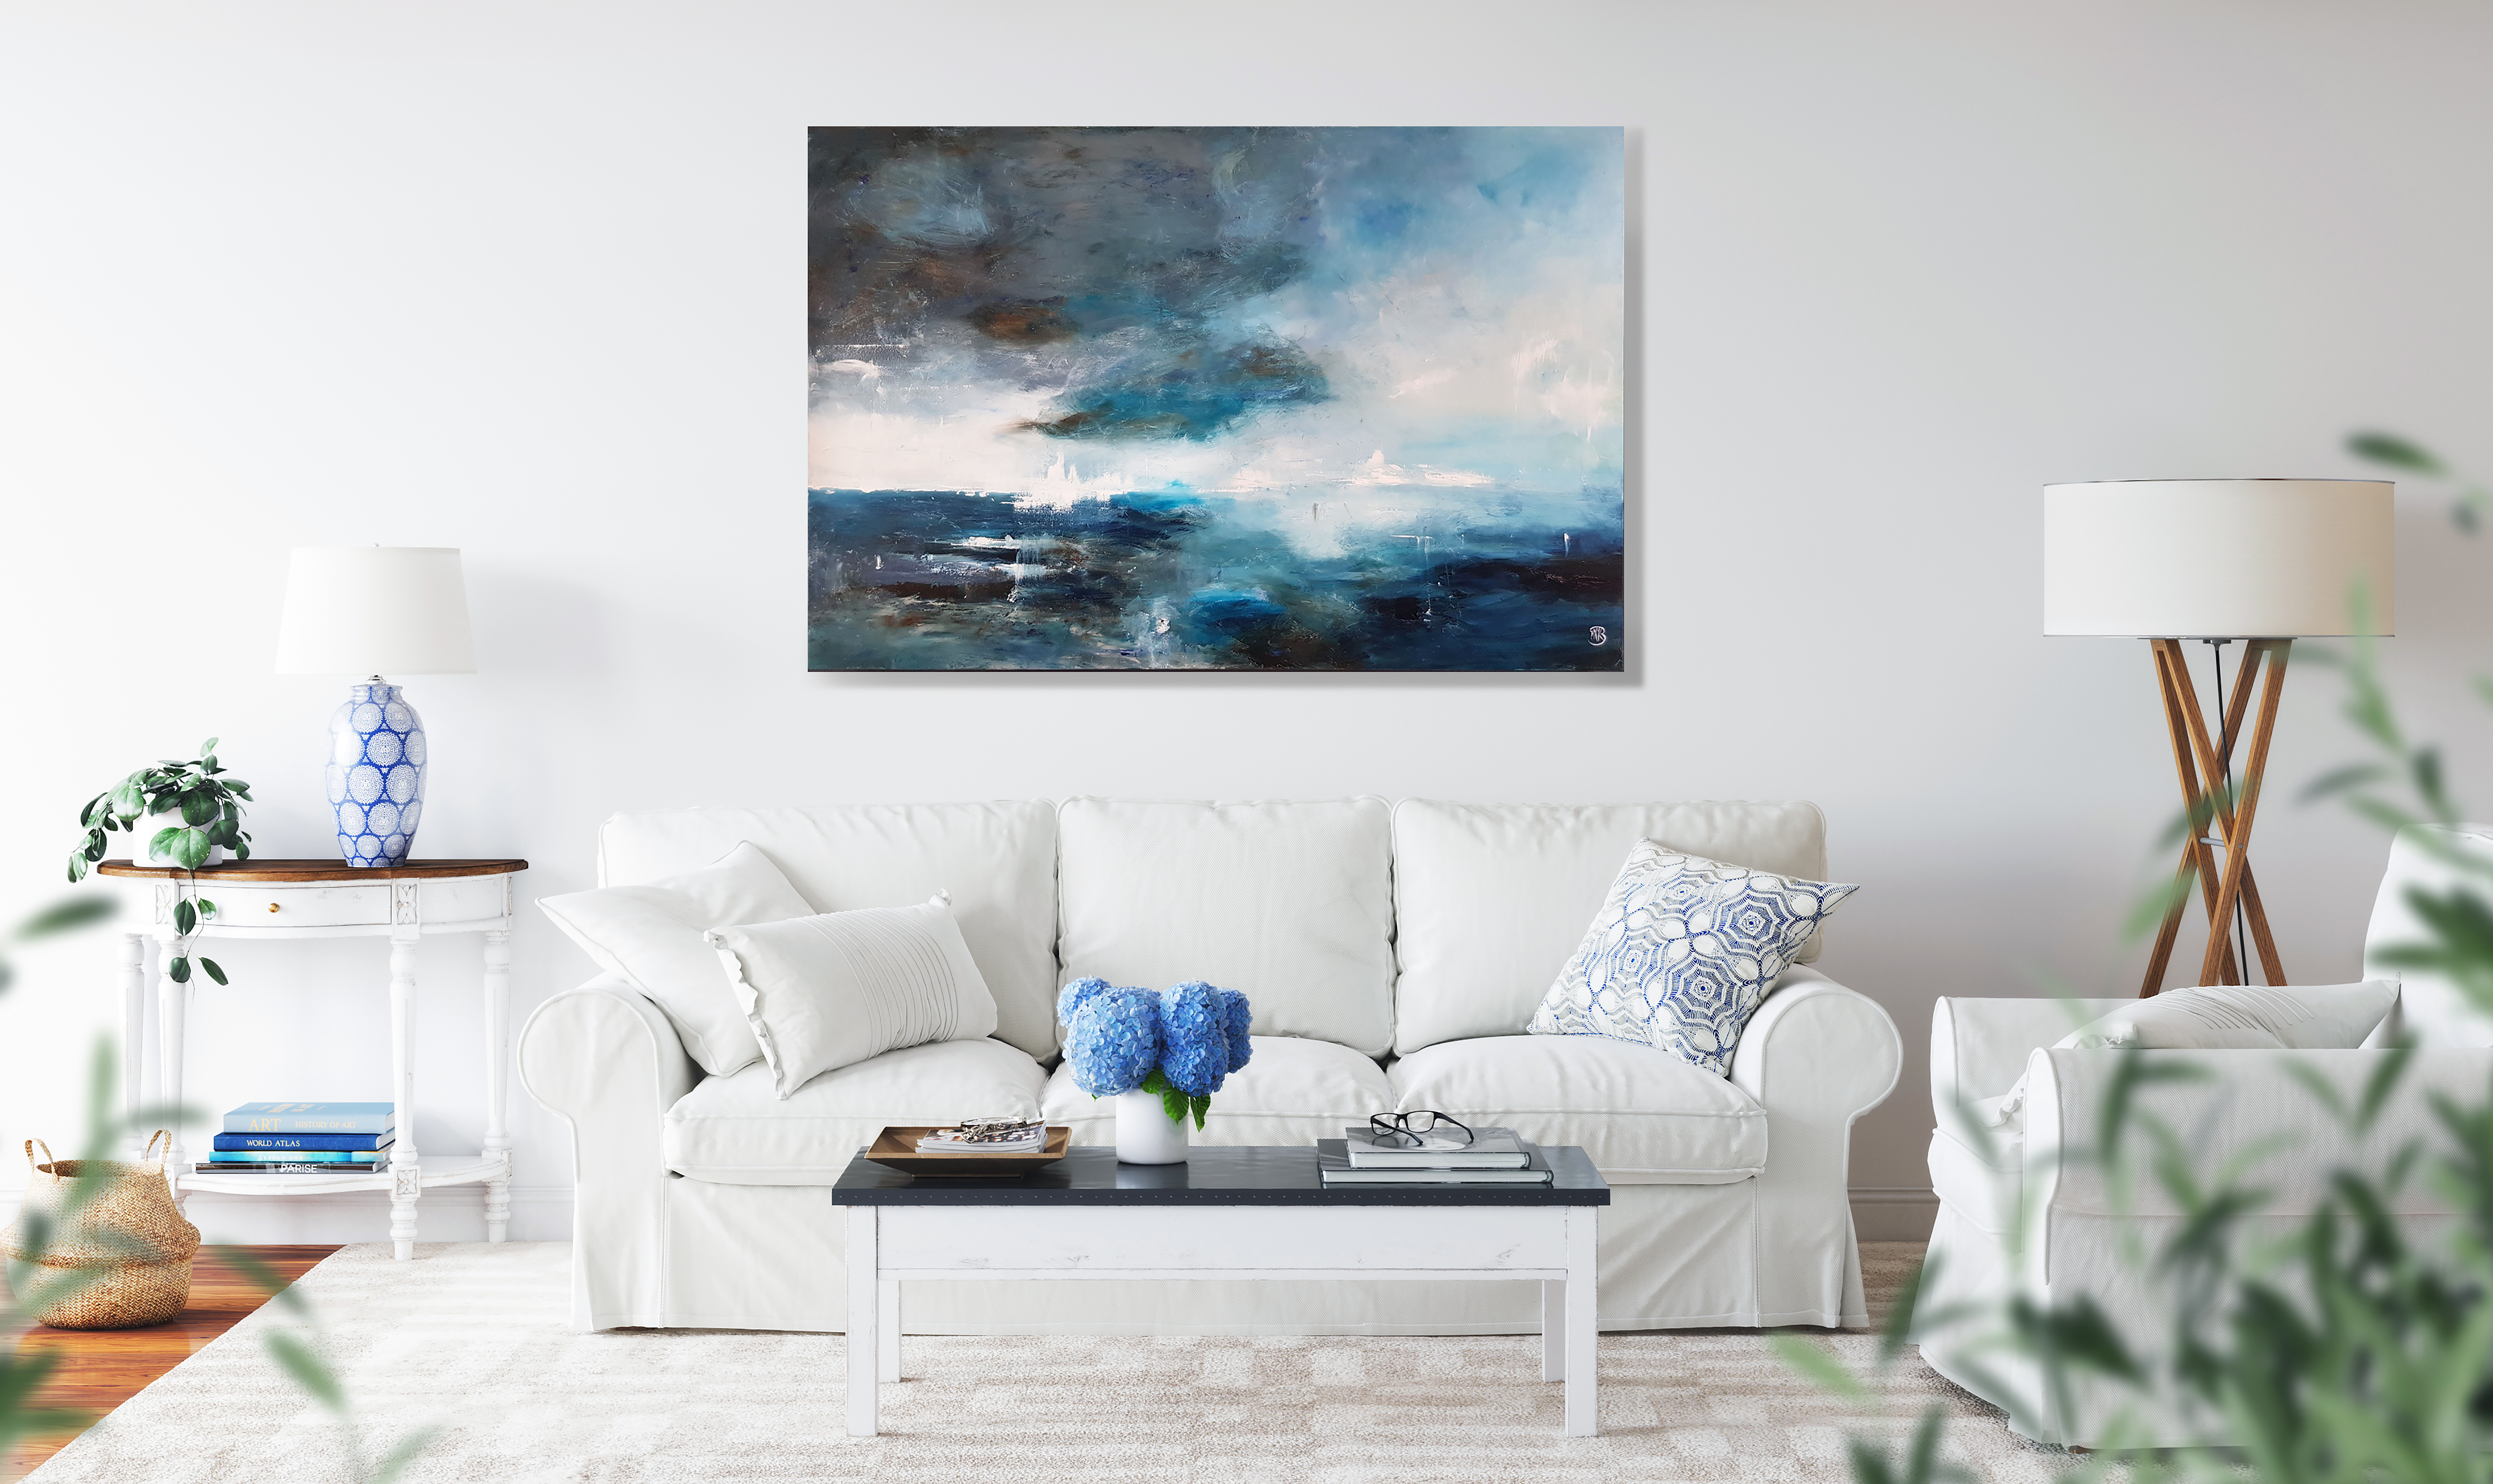 dreams of faraway places painting on wal